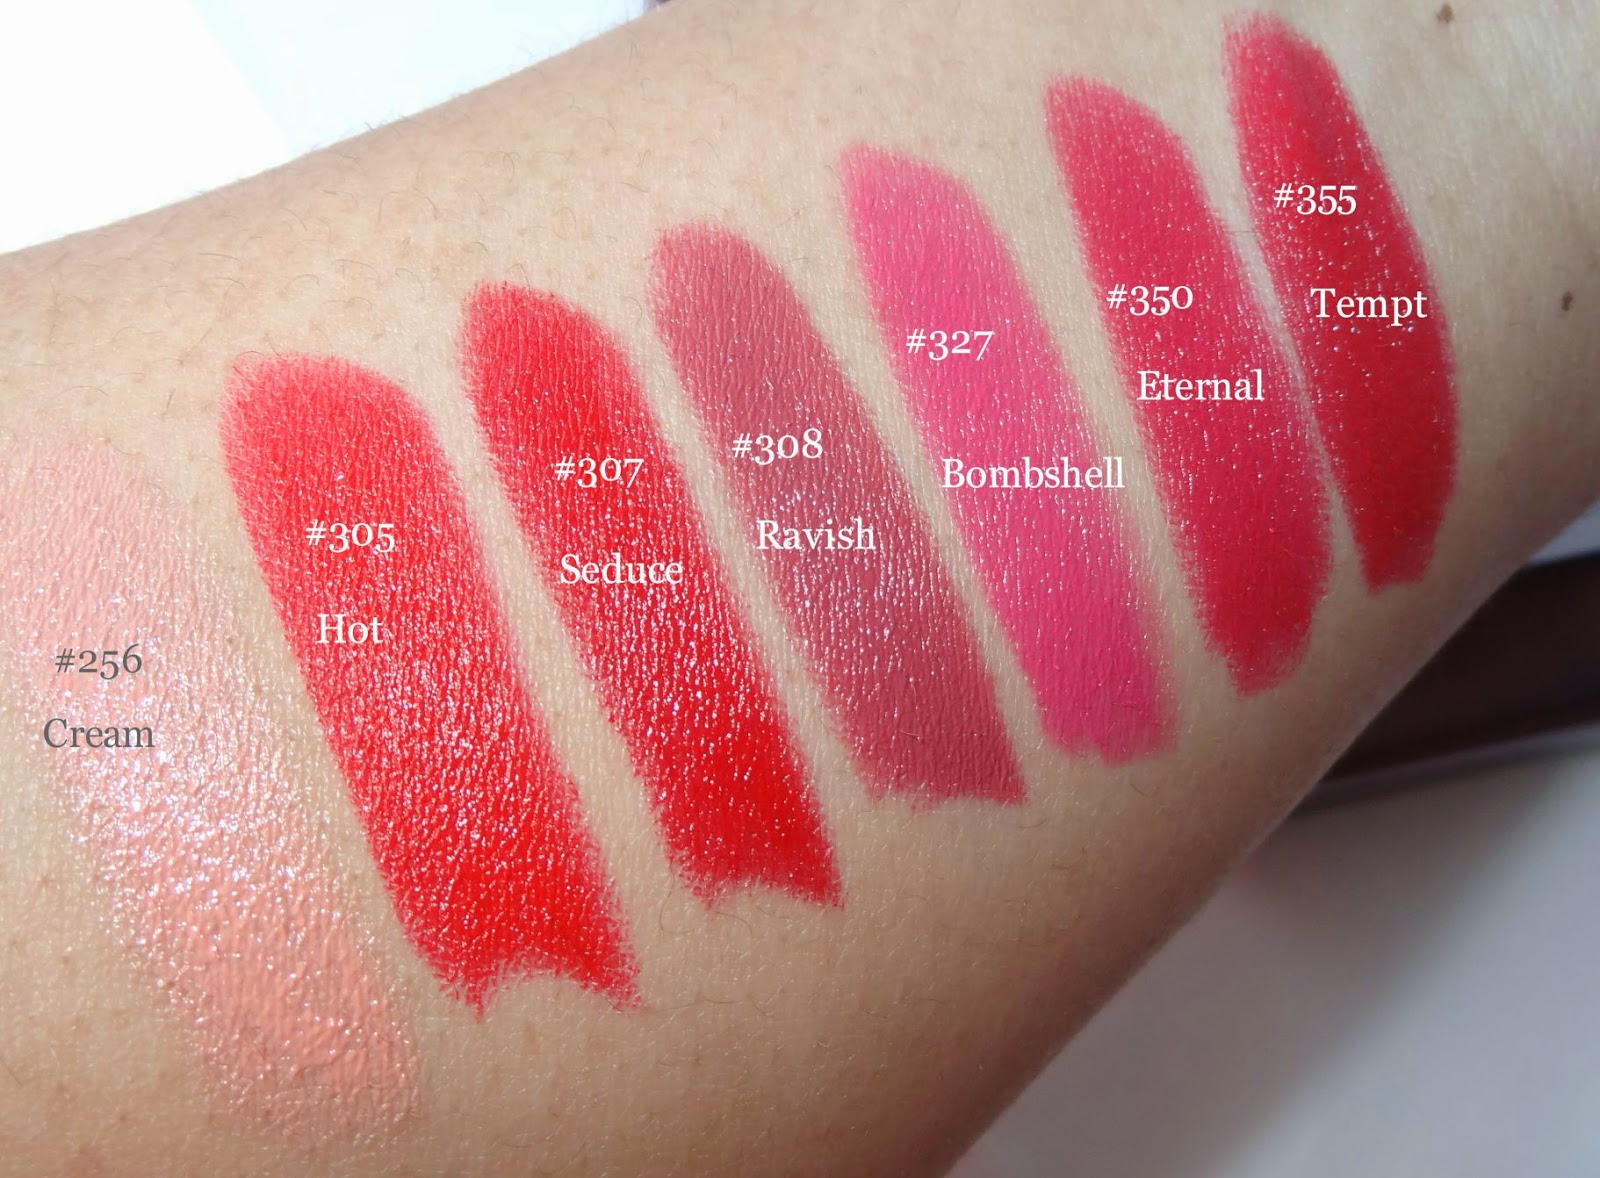 a picture of covergirl lip perfection lipstick swatches in #256,#305,#307,#327,#350,#355